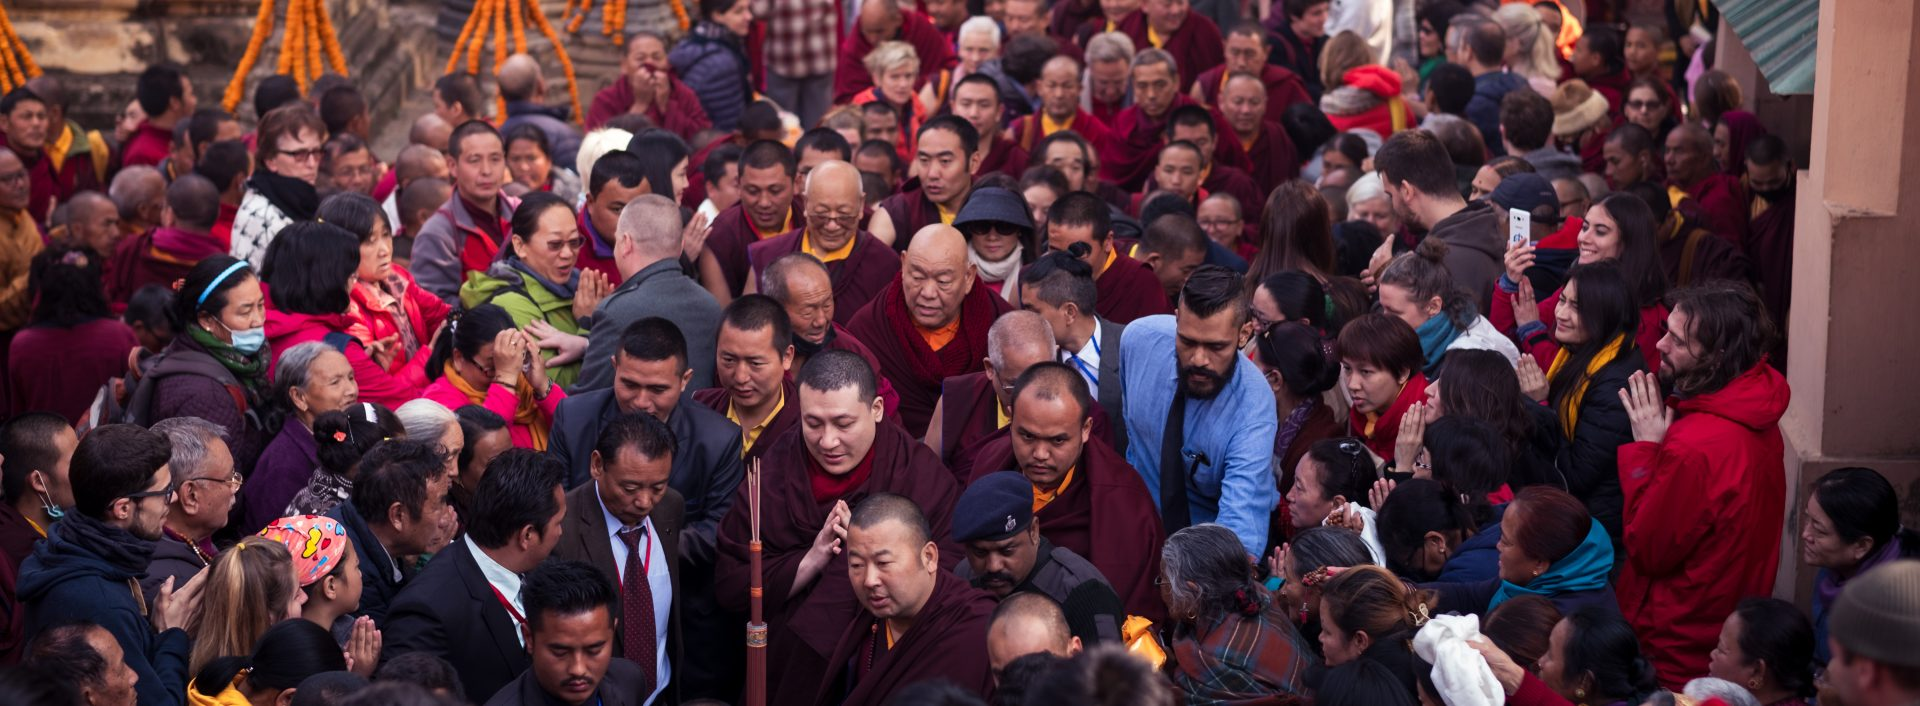 Thaye Dorje, His Holiness the 17th Gyalwa Karmapa, will preside over the Kagyu Monlam in Bodh Gaya in December 2019